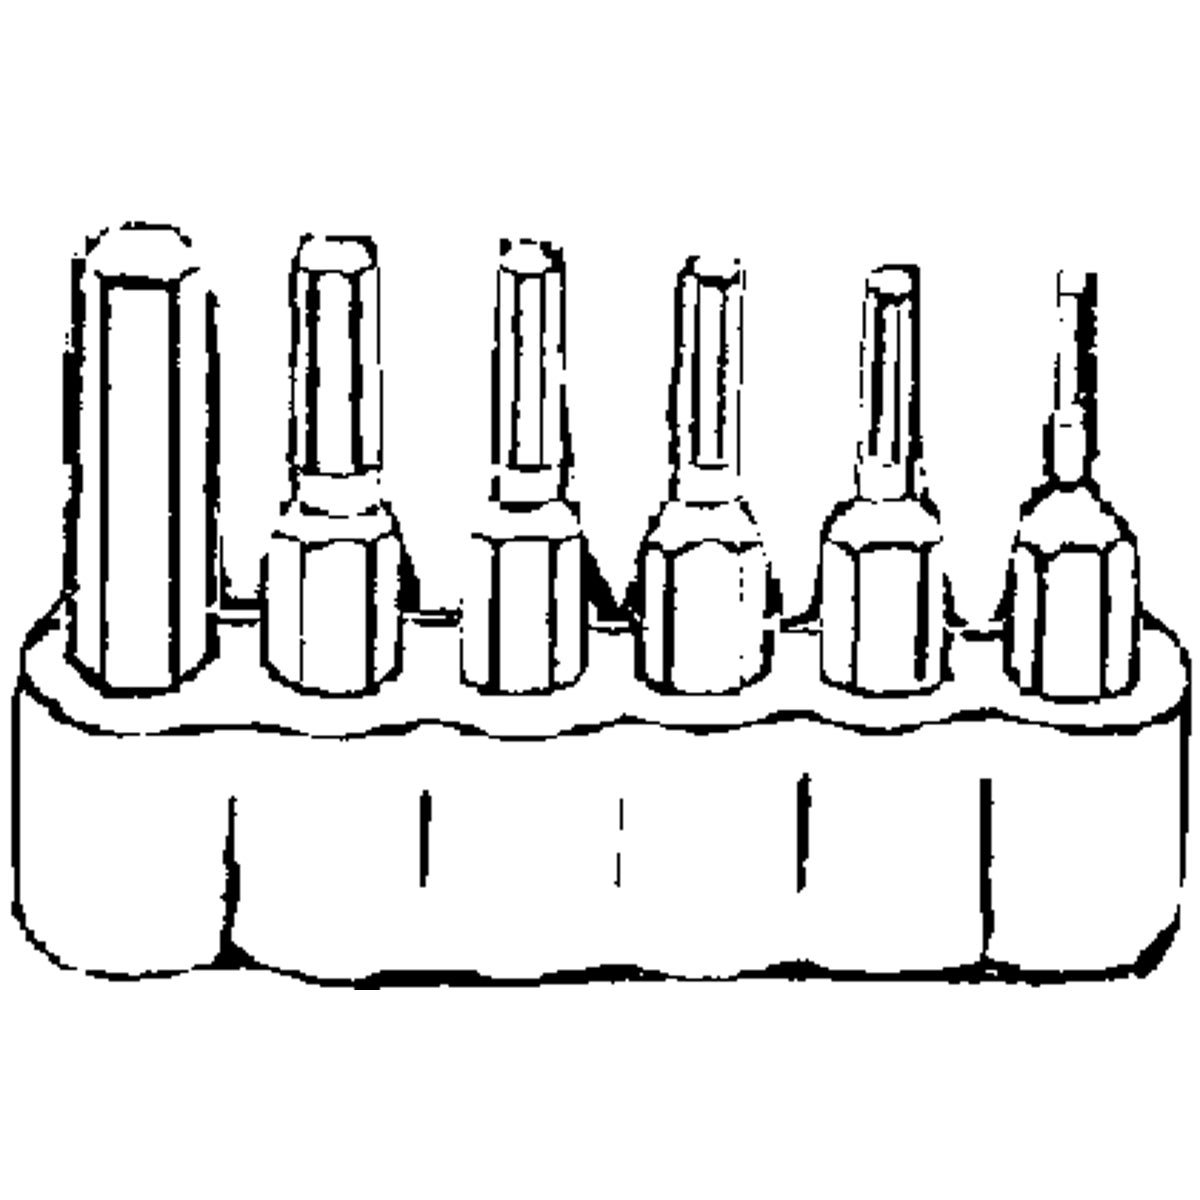 6PC HEX BIT SET - 86420 by Bwt Inc